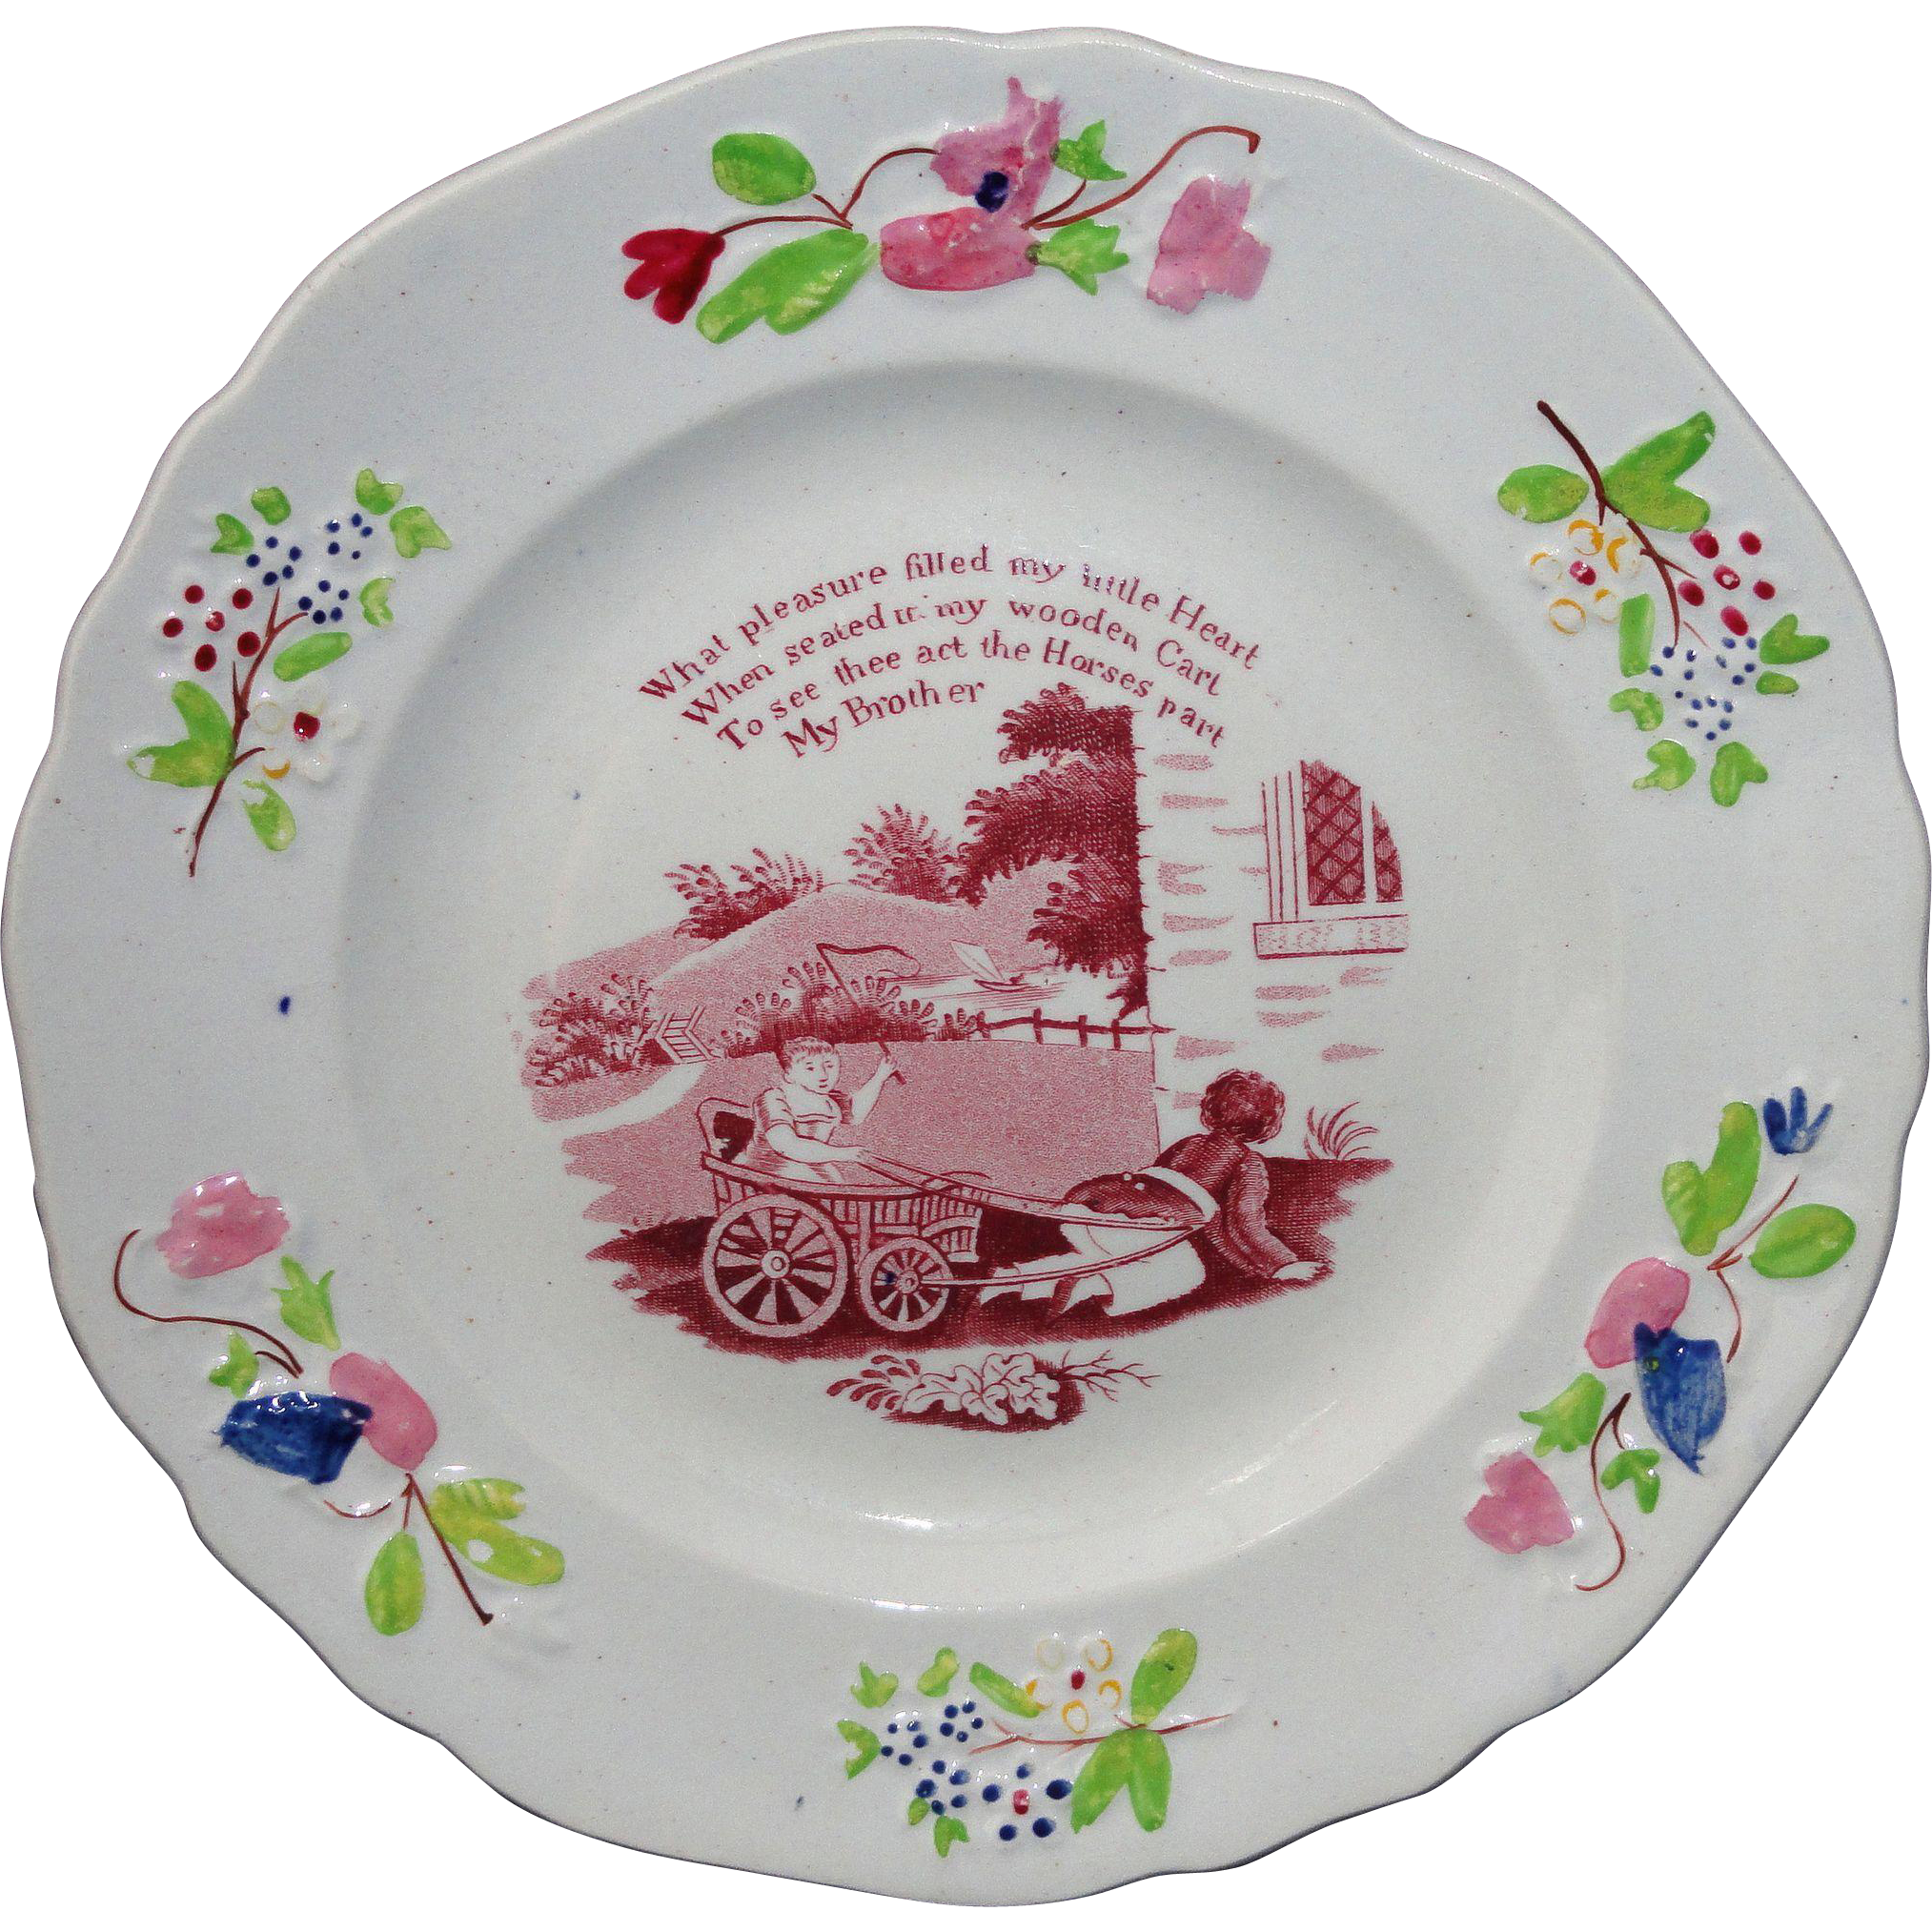 Early Colorful Transferware Childs Plate ~ MY BROTHER ~ Staffordshire c. 1820